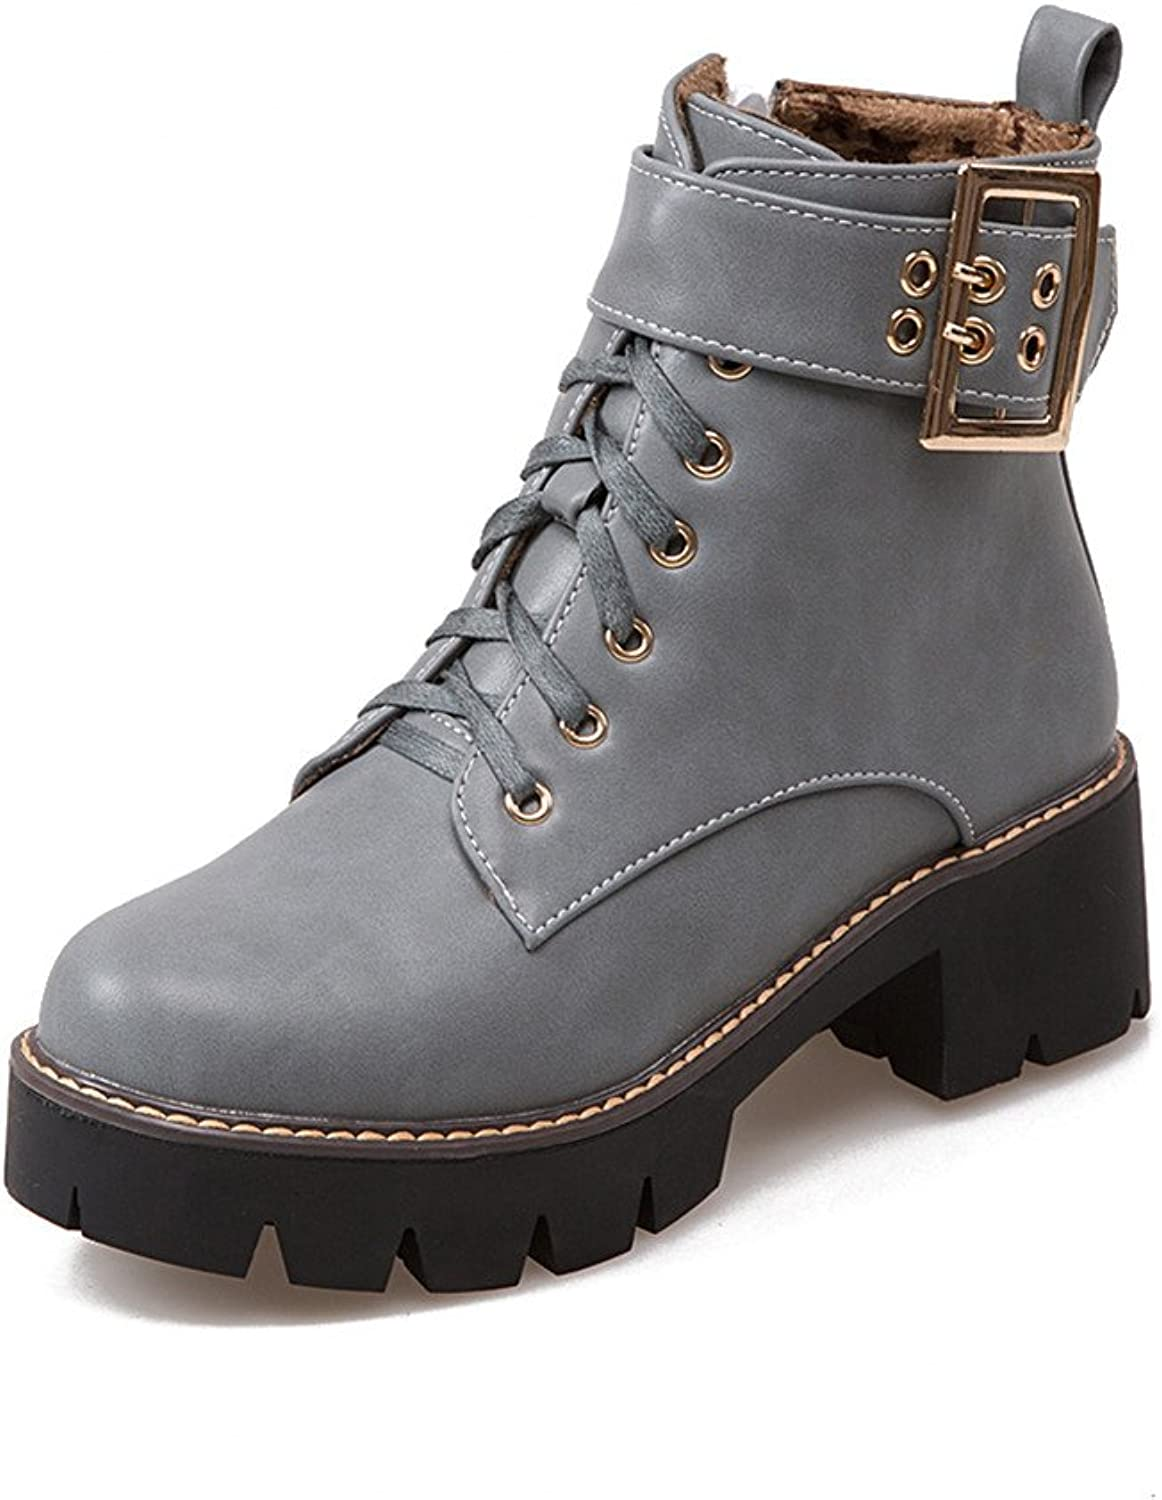 Lucksender Womens Buckle Lace Up Side Zip Chunky Square Heel Short Boots